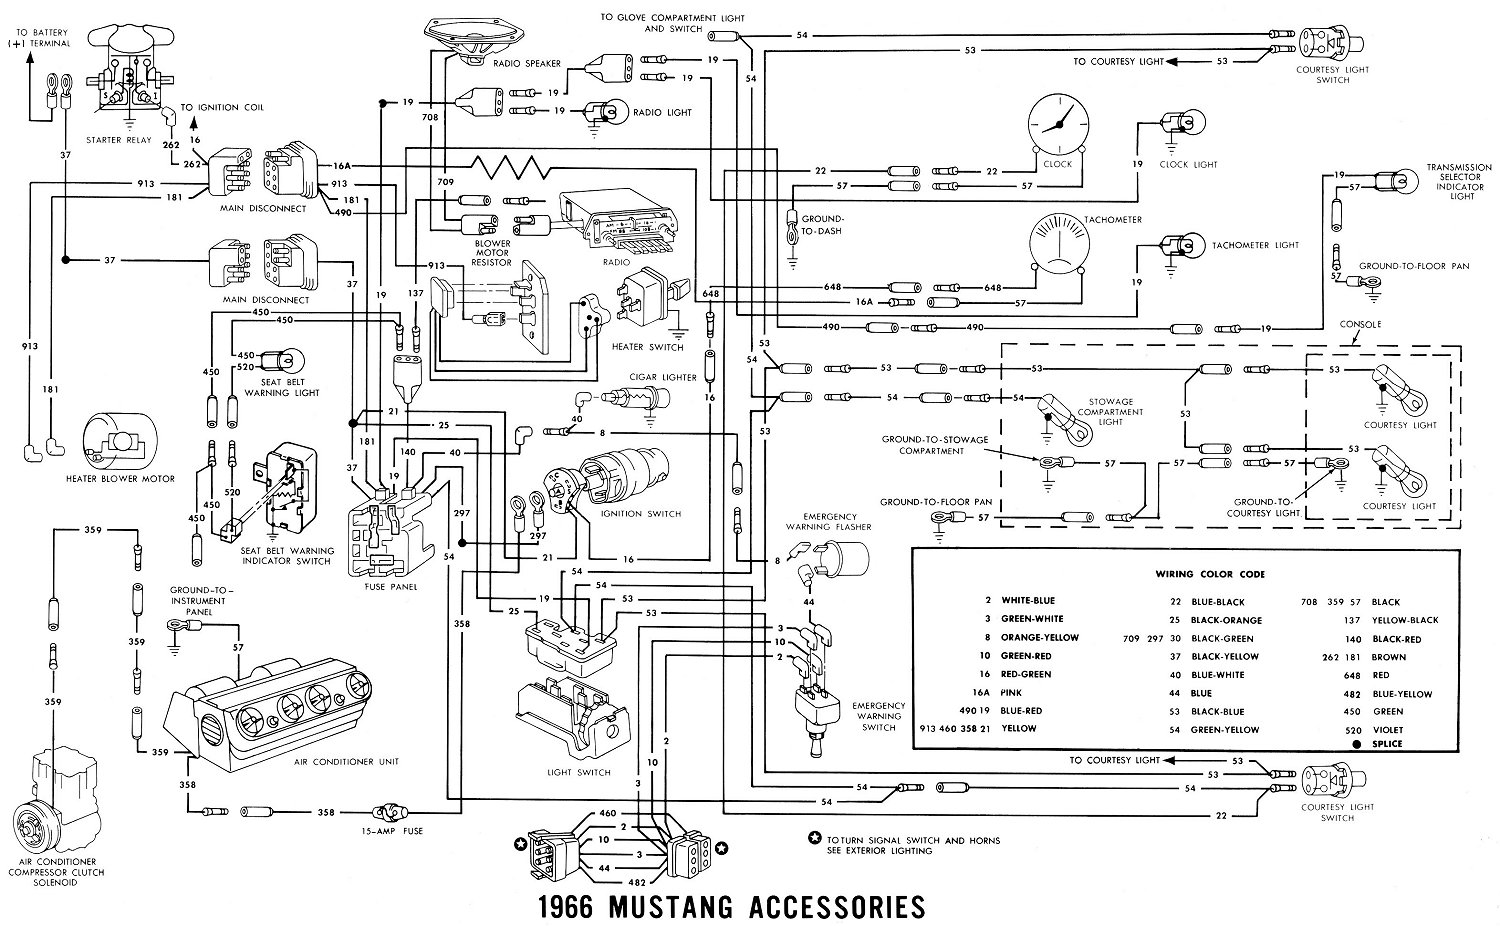 [DIAGRAM_3NM]  1966 Mustang Wiring Diagrams - Average Joe Restoration | 1966 Ford Alternator Diagram Wiring Schematic |  | Average Joe Restoration